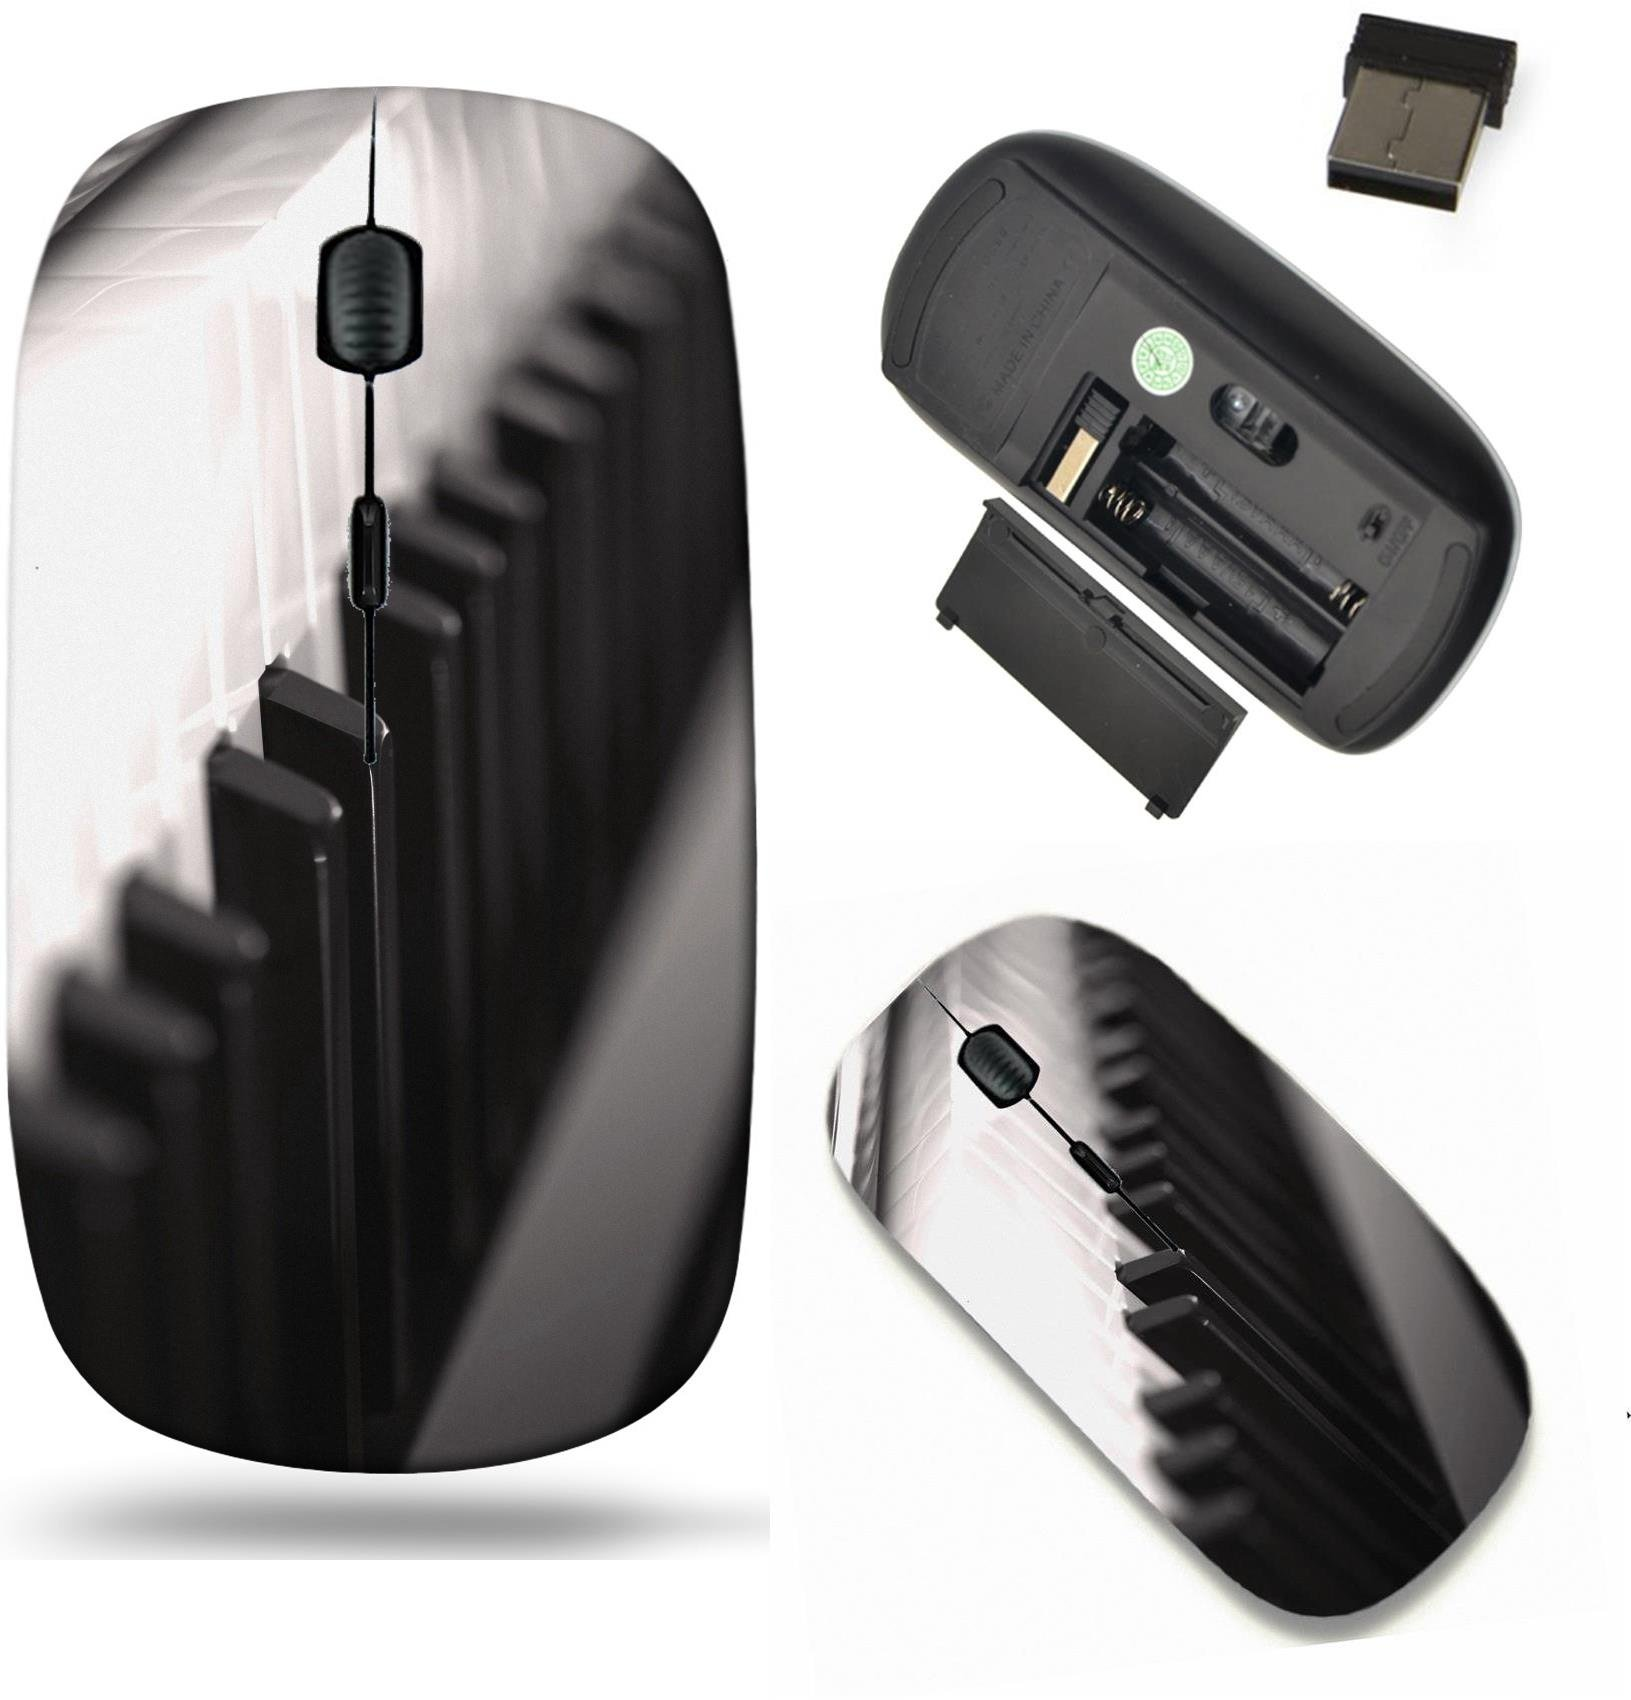 Liili Wireless Mouse Travel 2.4G Wireless Mice with USB Receiver, Click with 1000 DPI for notebook, pc, laptop, computer, mac book Paino keyboard Photo 6213207